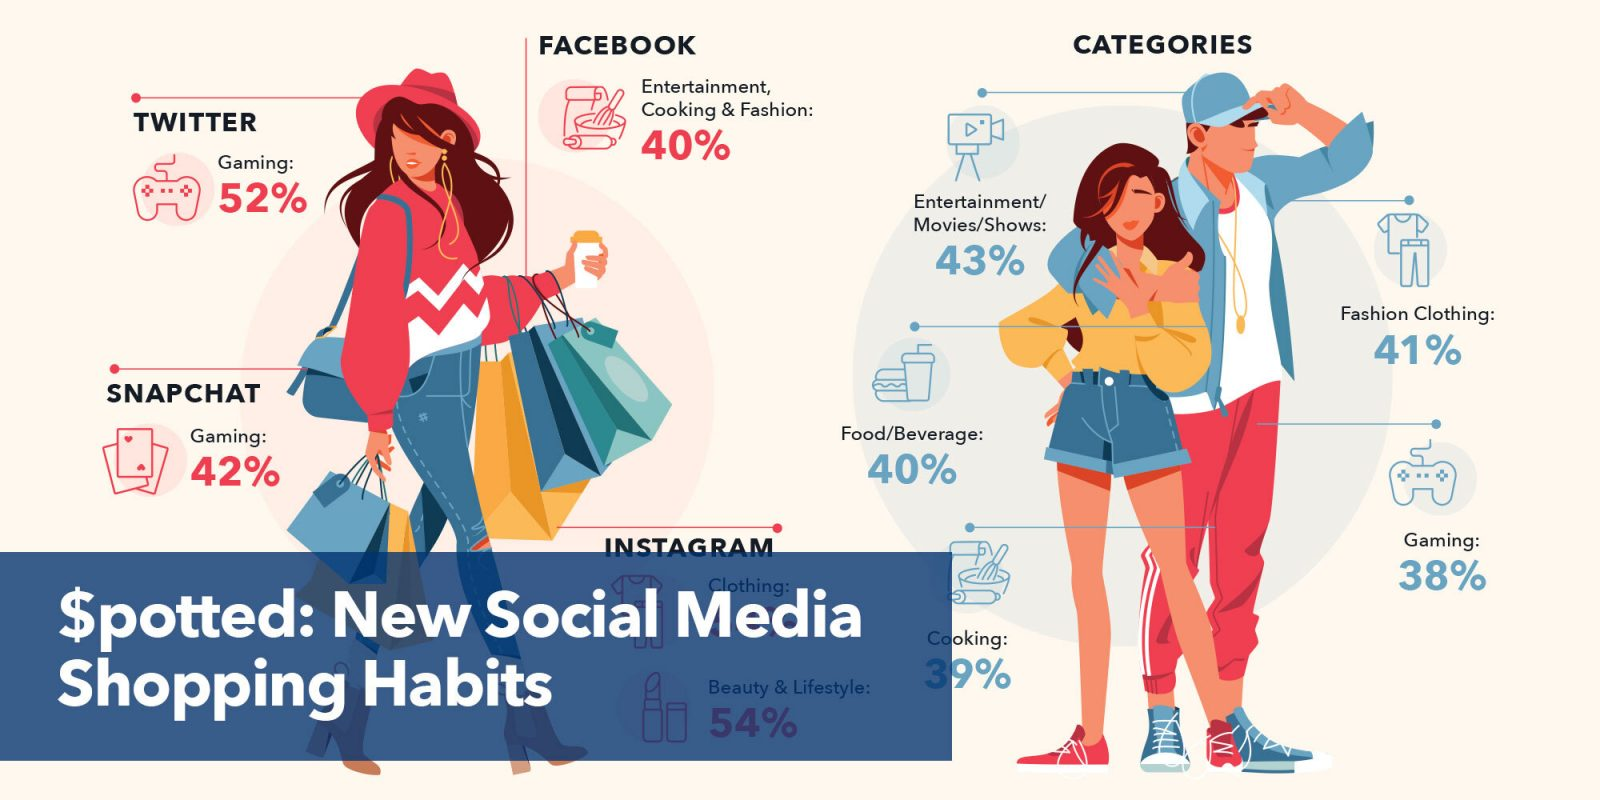 $potted: New Social Media Shopping Habits